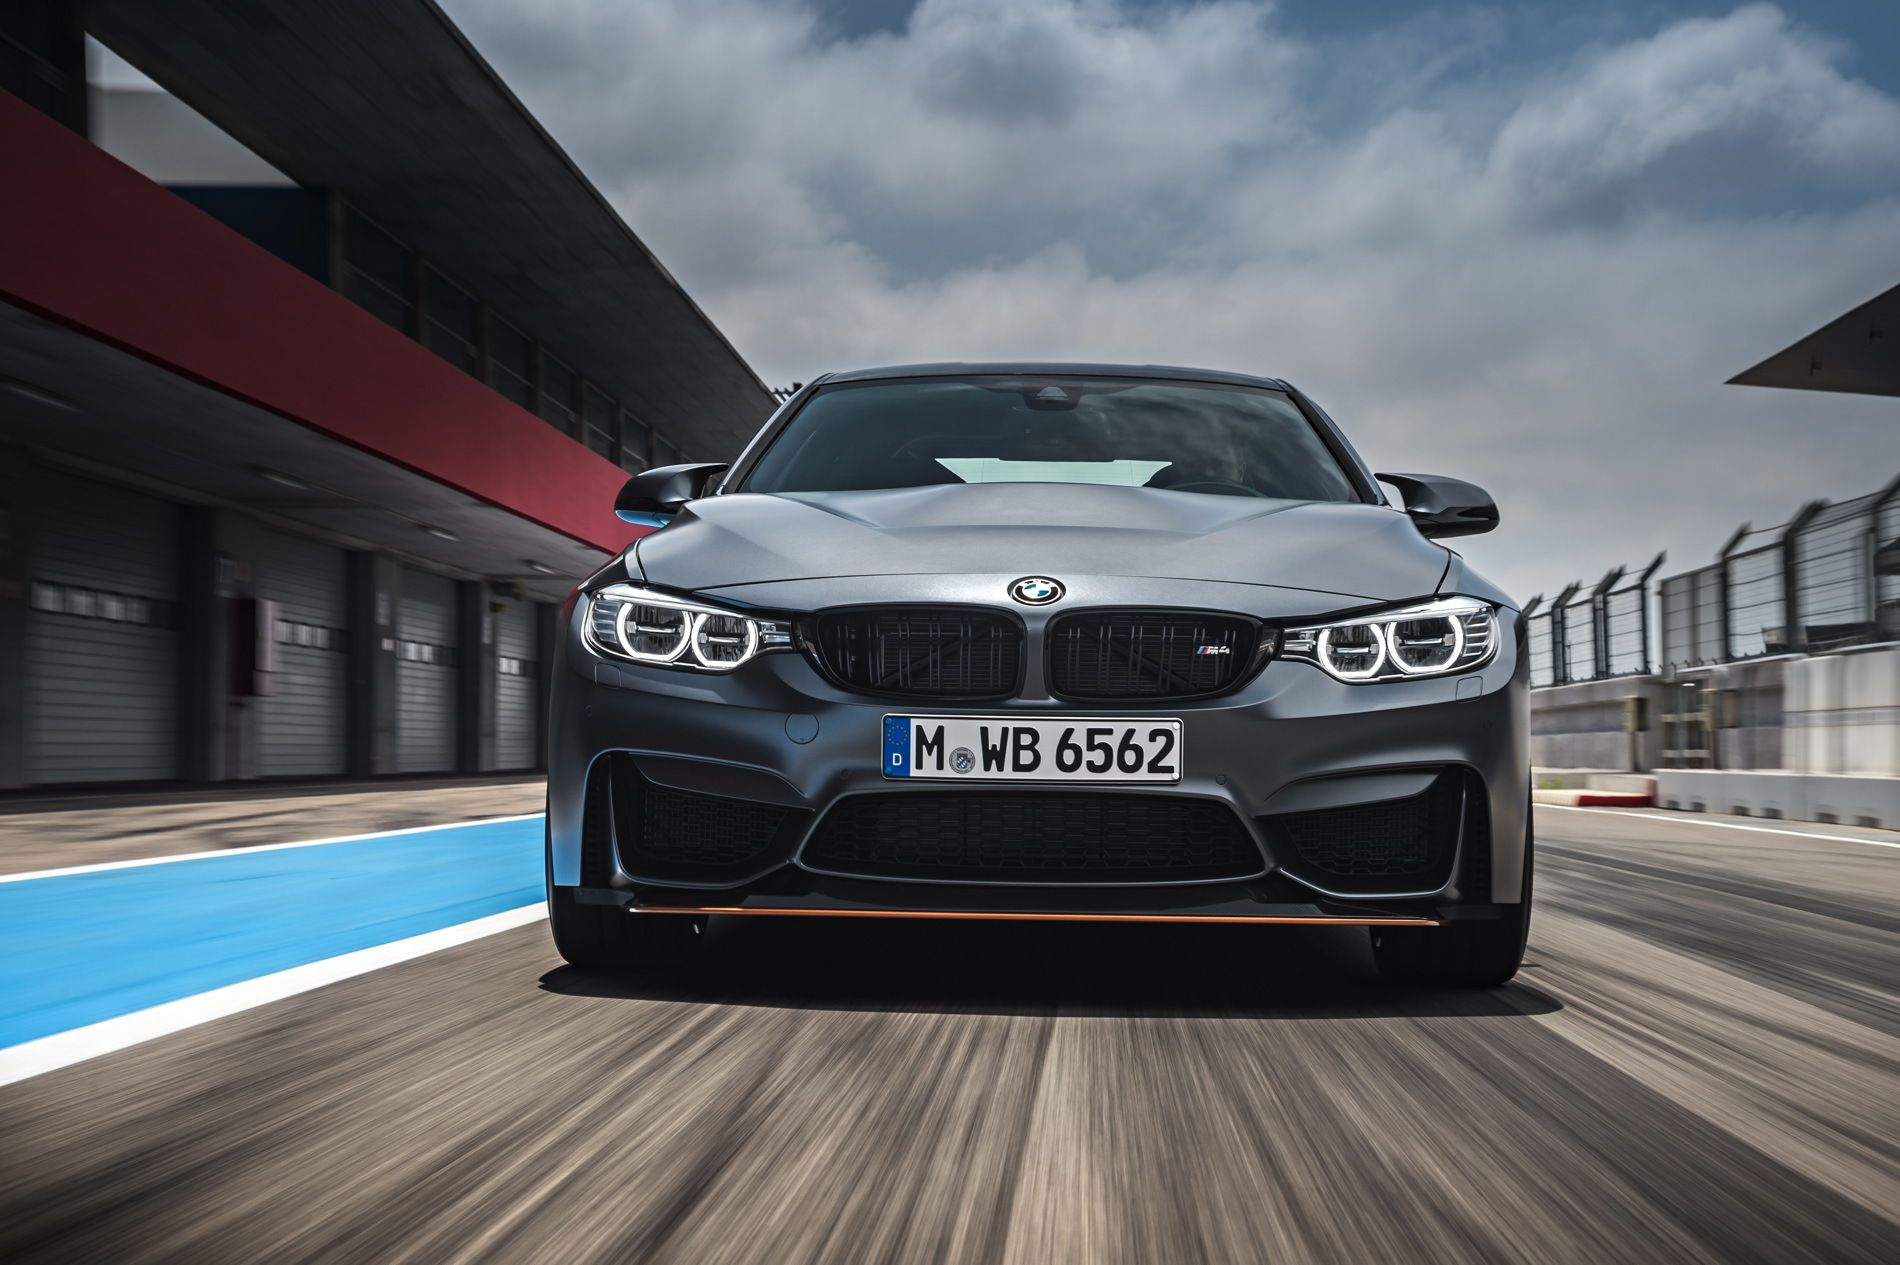 2016 bmw m4 gts announced with power boosting water injection system rides pinterest 2016 bmw m4 m4 gts and bmw m4